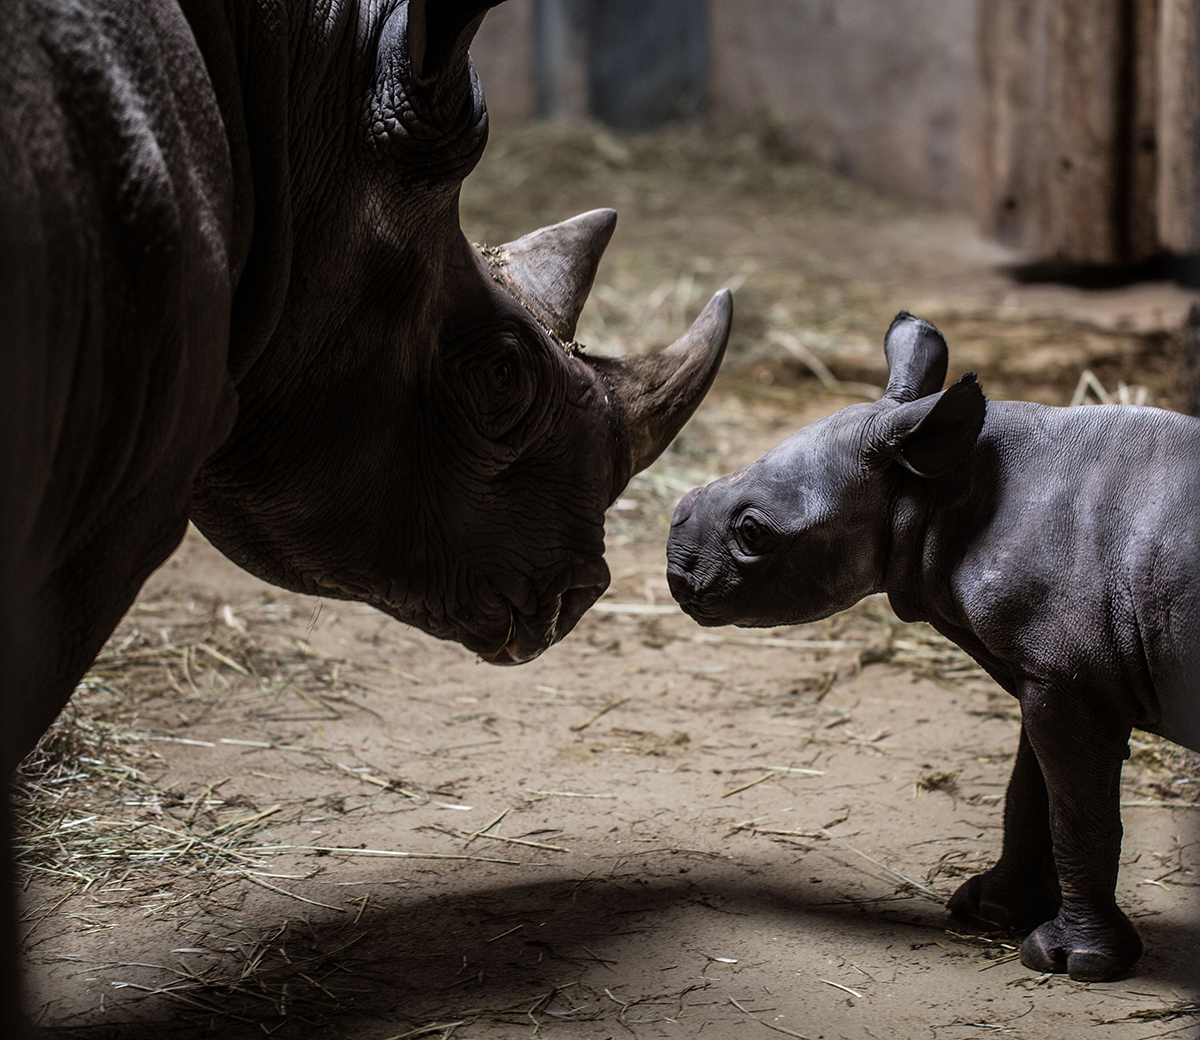 Baby rhino at Lincoln Park Zoo